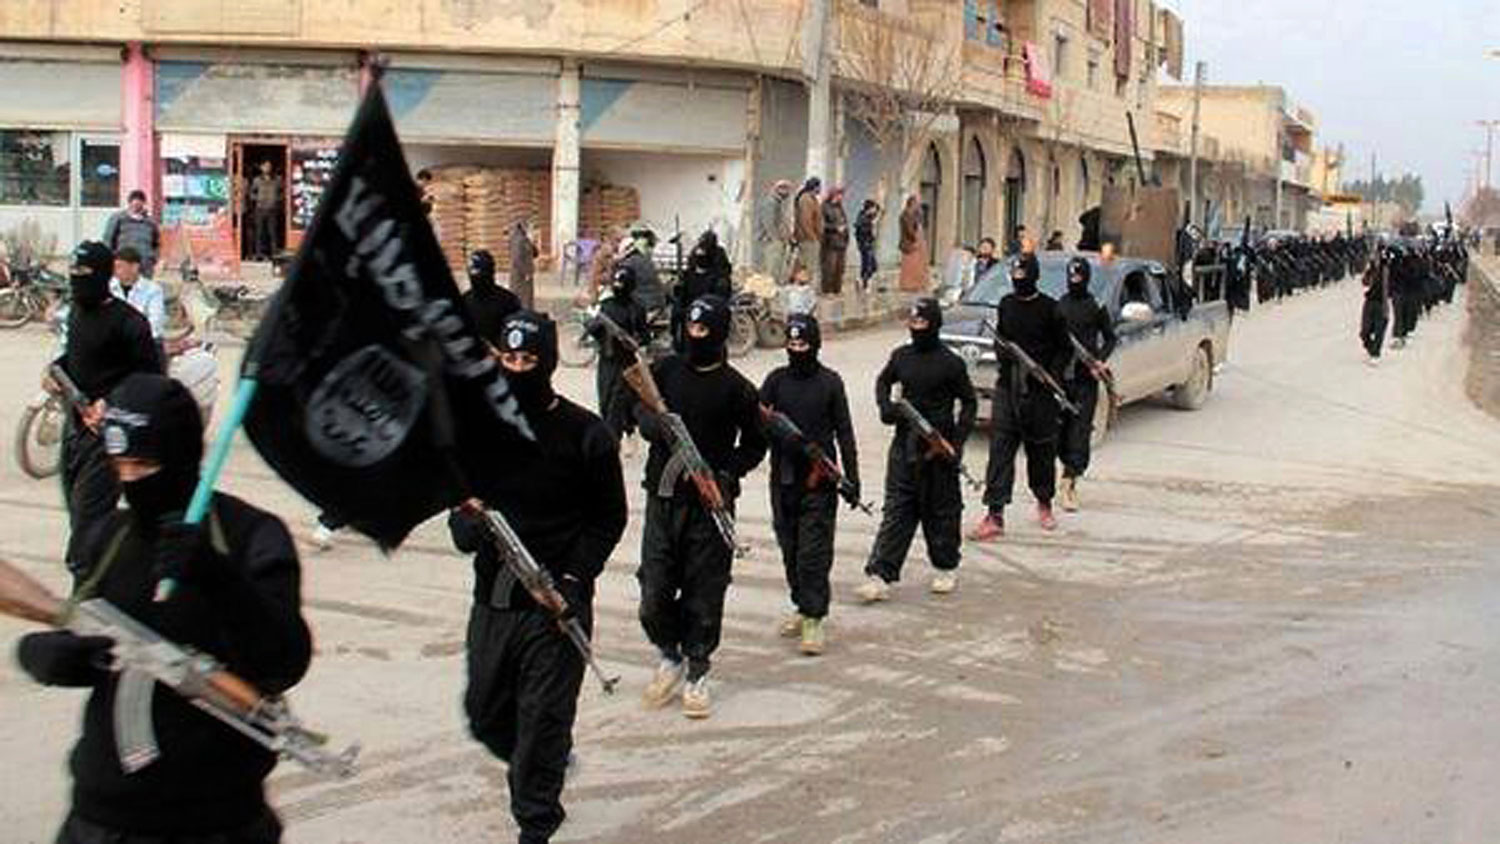 Fighters from the Islamic State of Iraq and Greater Syria marching in Raqqa, Syria, on Jan. 14, 2014